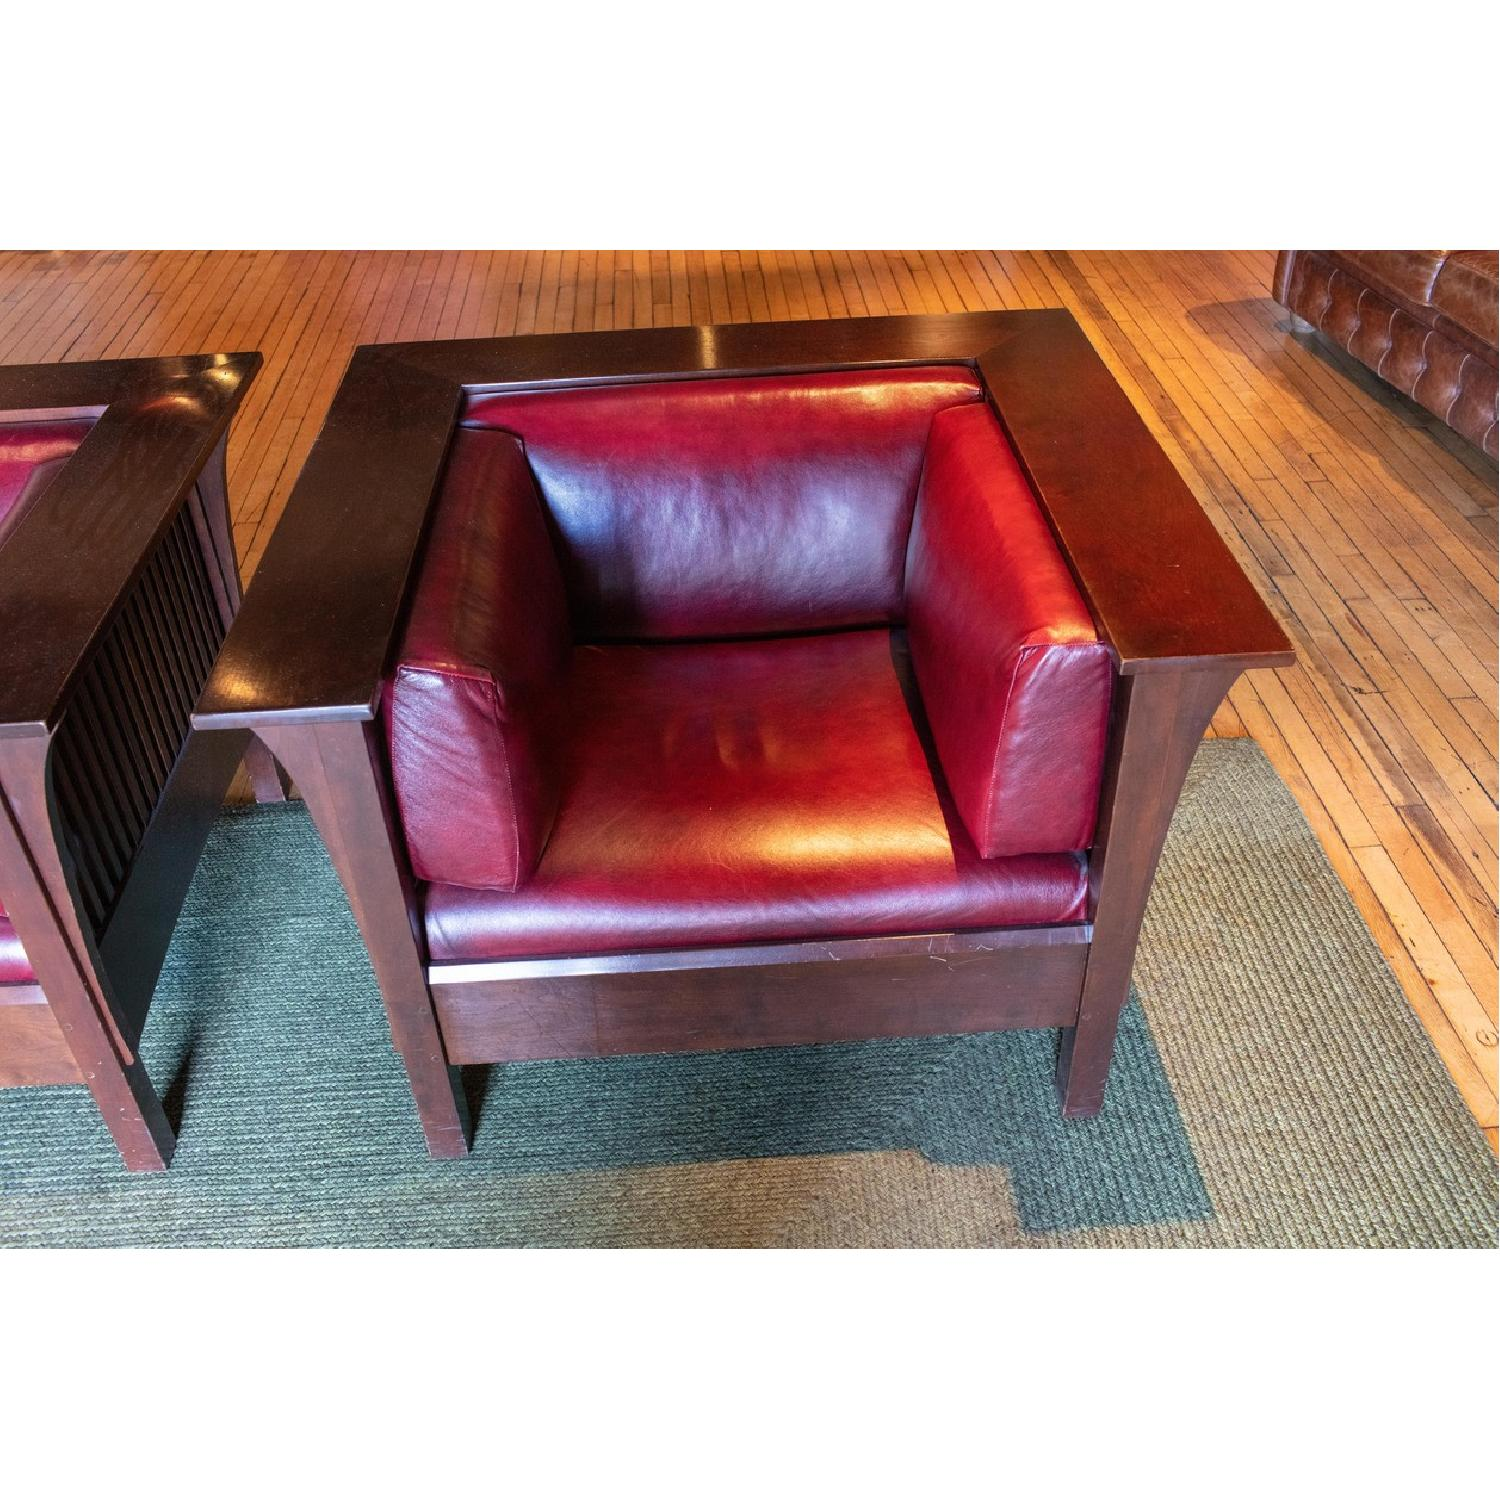 Stickley Prairie Spindle Chairs - image-4